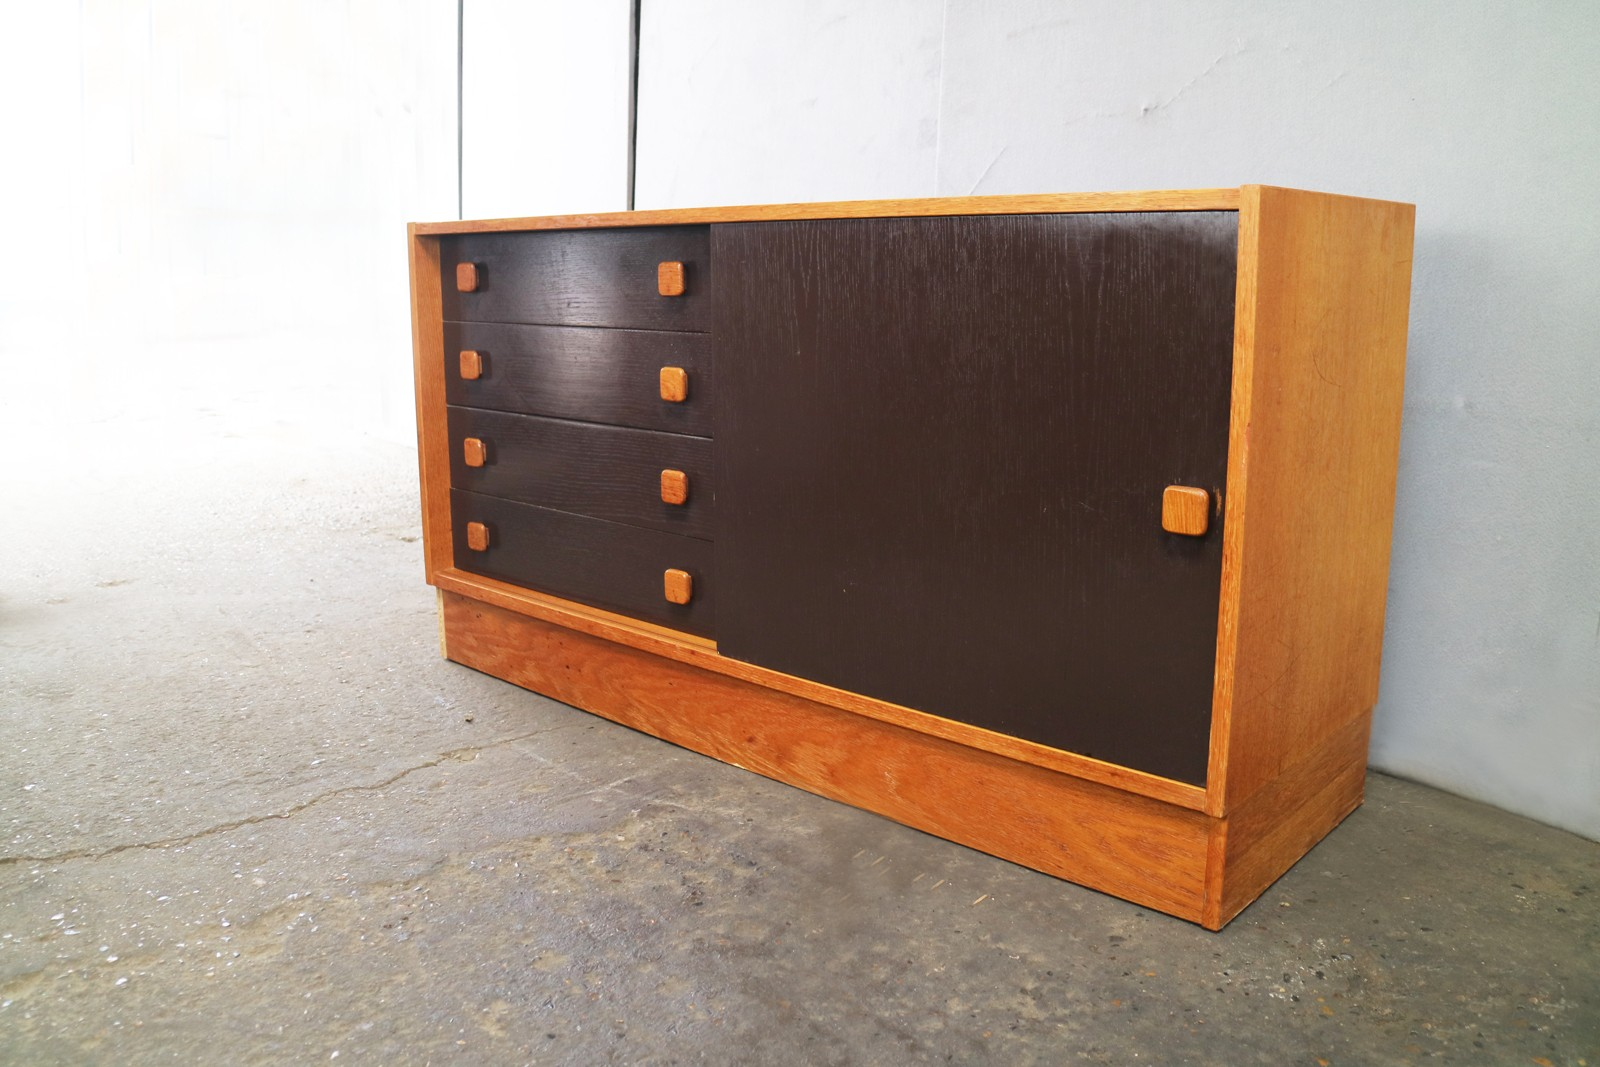 Danish Teak Credenza For Sale : Vintage danish teak credenza by domino mobler 1960s design market